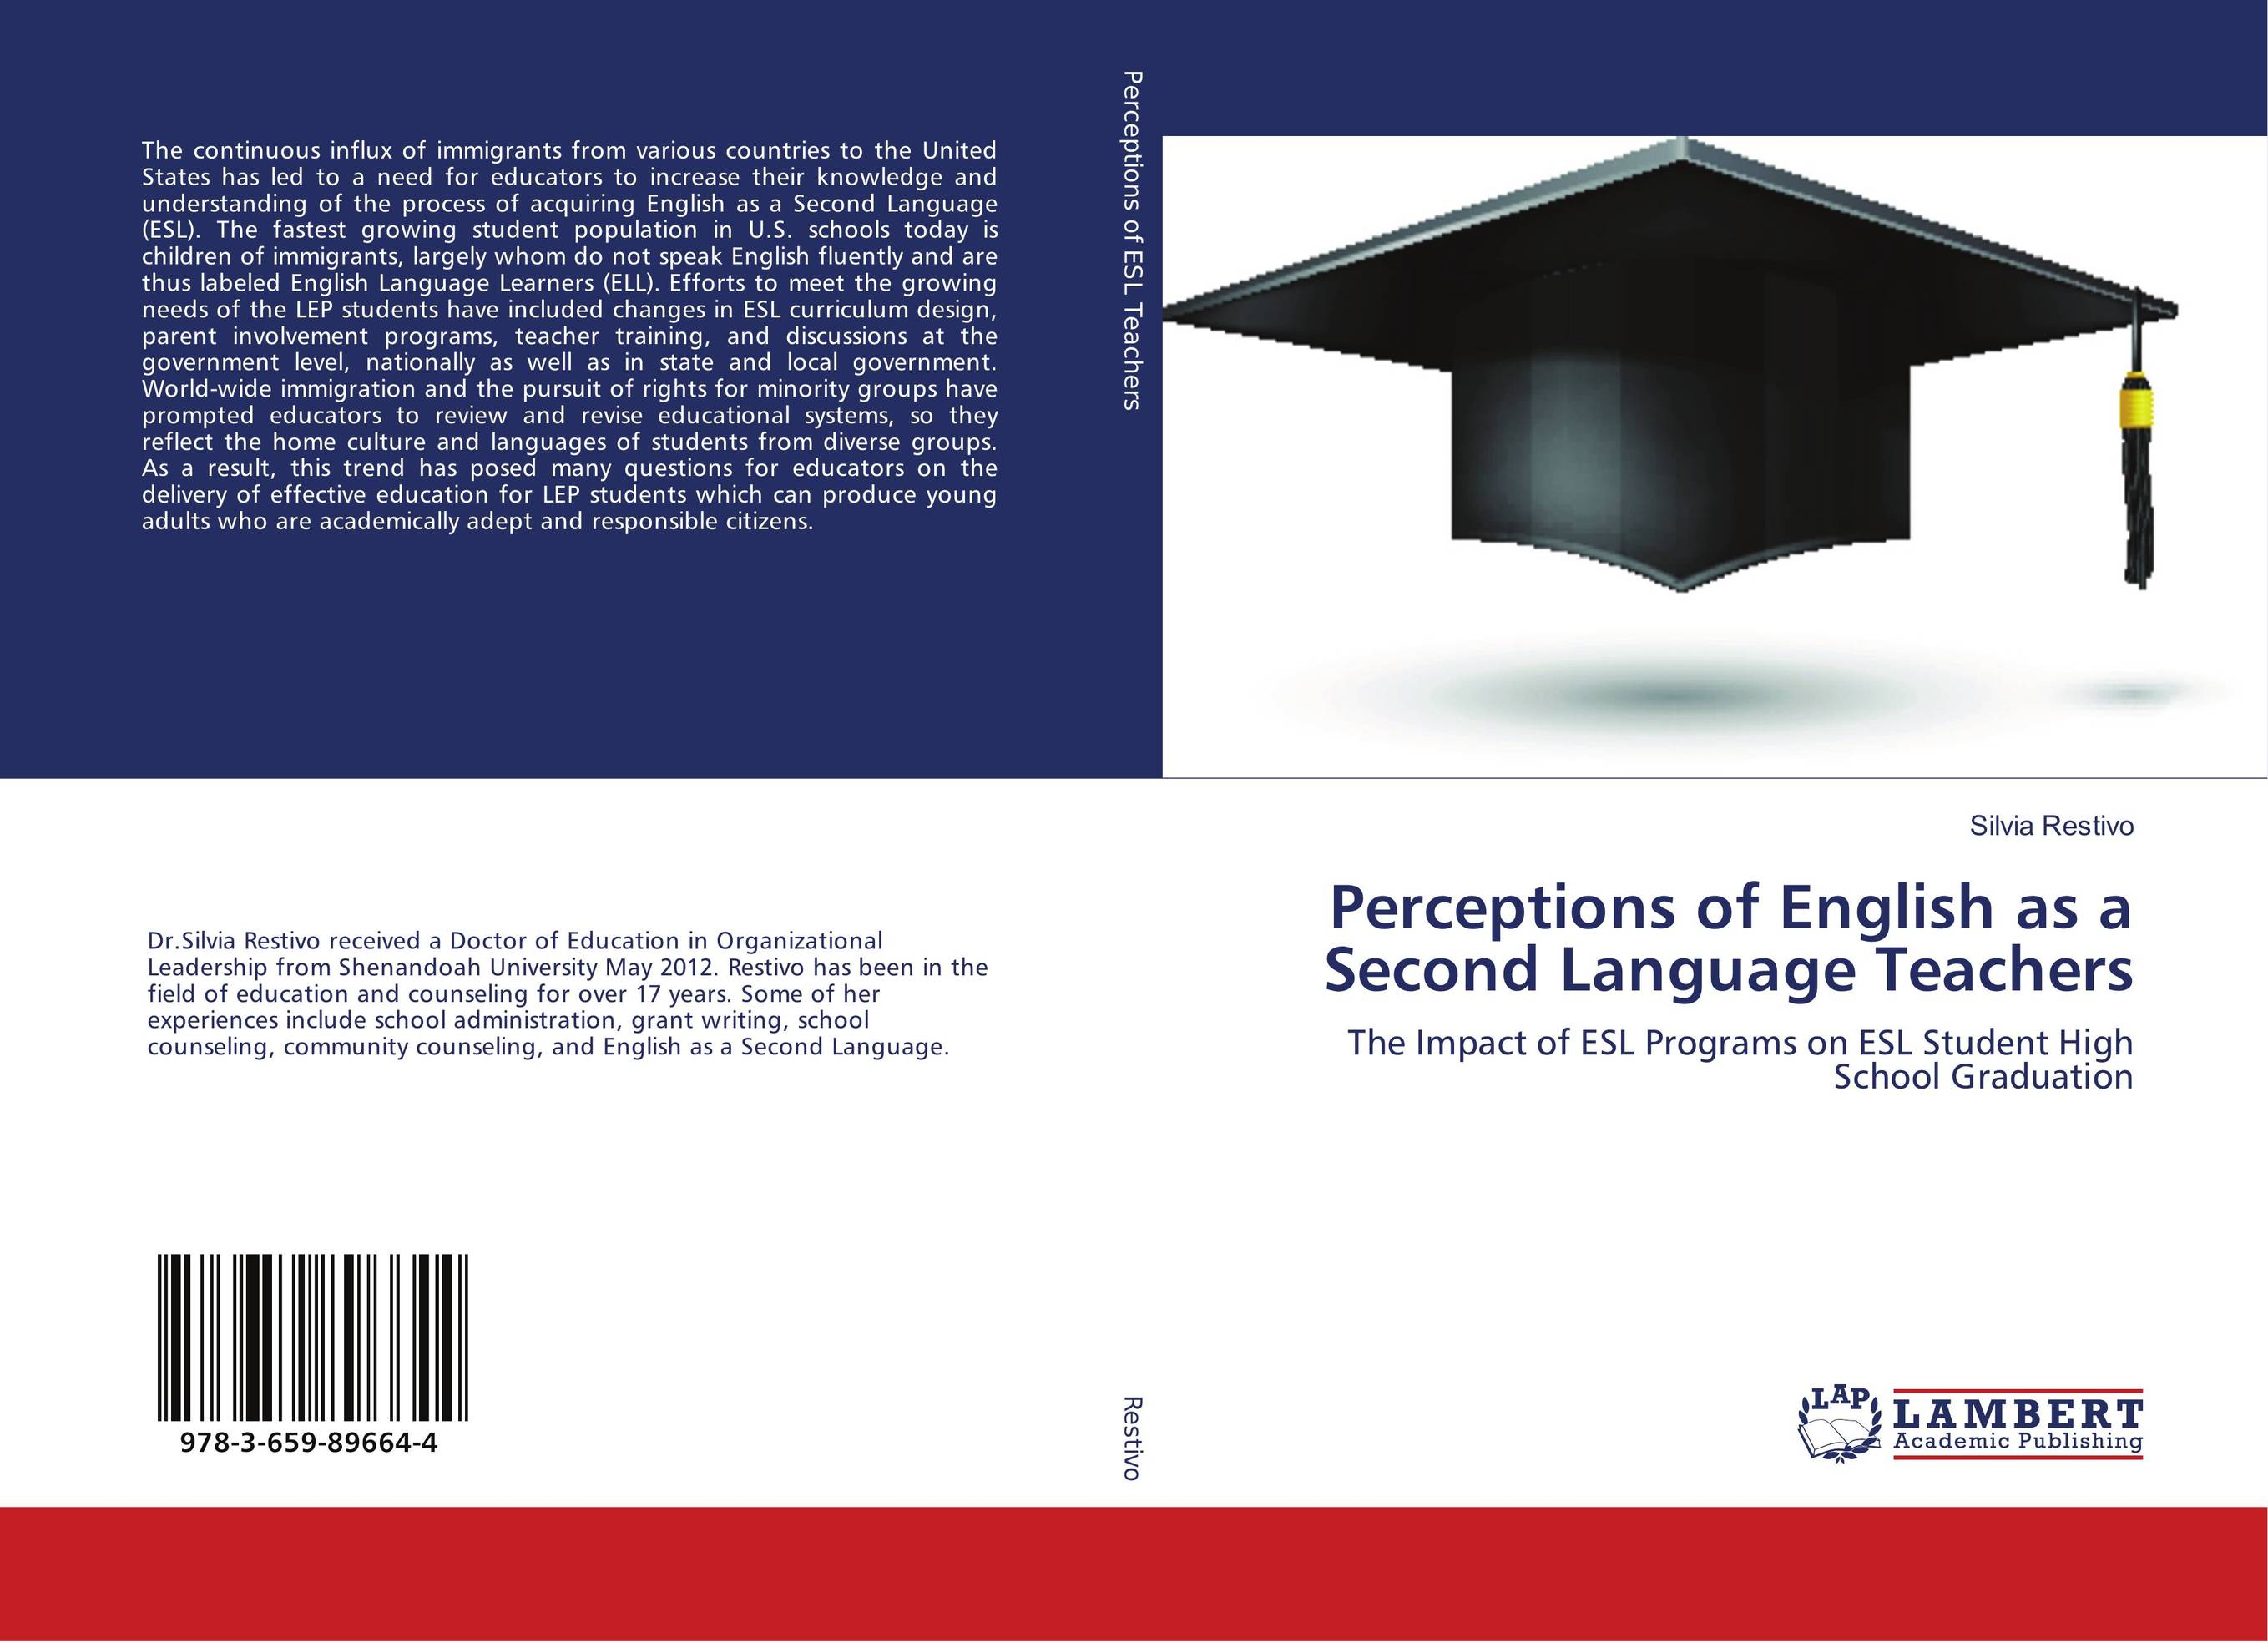 development as a second language teacher English language teaching (elt) is a widely used teacher-centered term, as in the english language teaching divisions of large publishing houses, elt training, etc teaching english as a second language (tesl), teaching english to speakers of other languages (tesol), and teaching english as a foreign language (tefl) are also used.